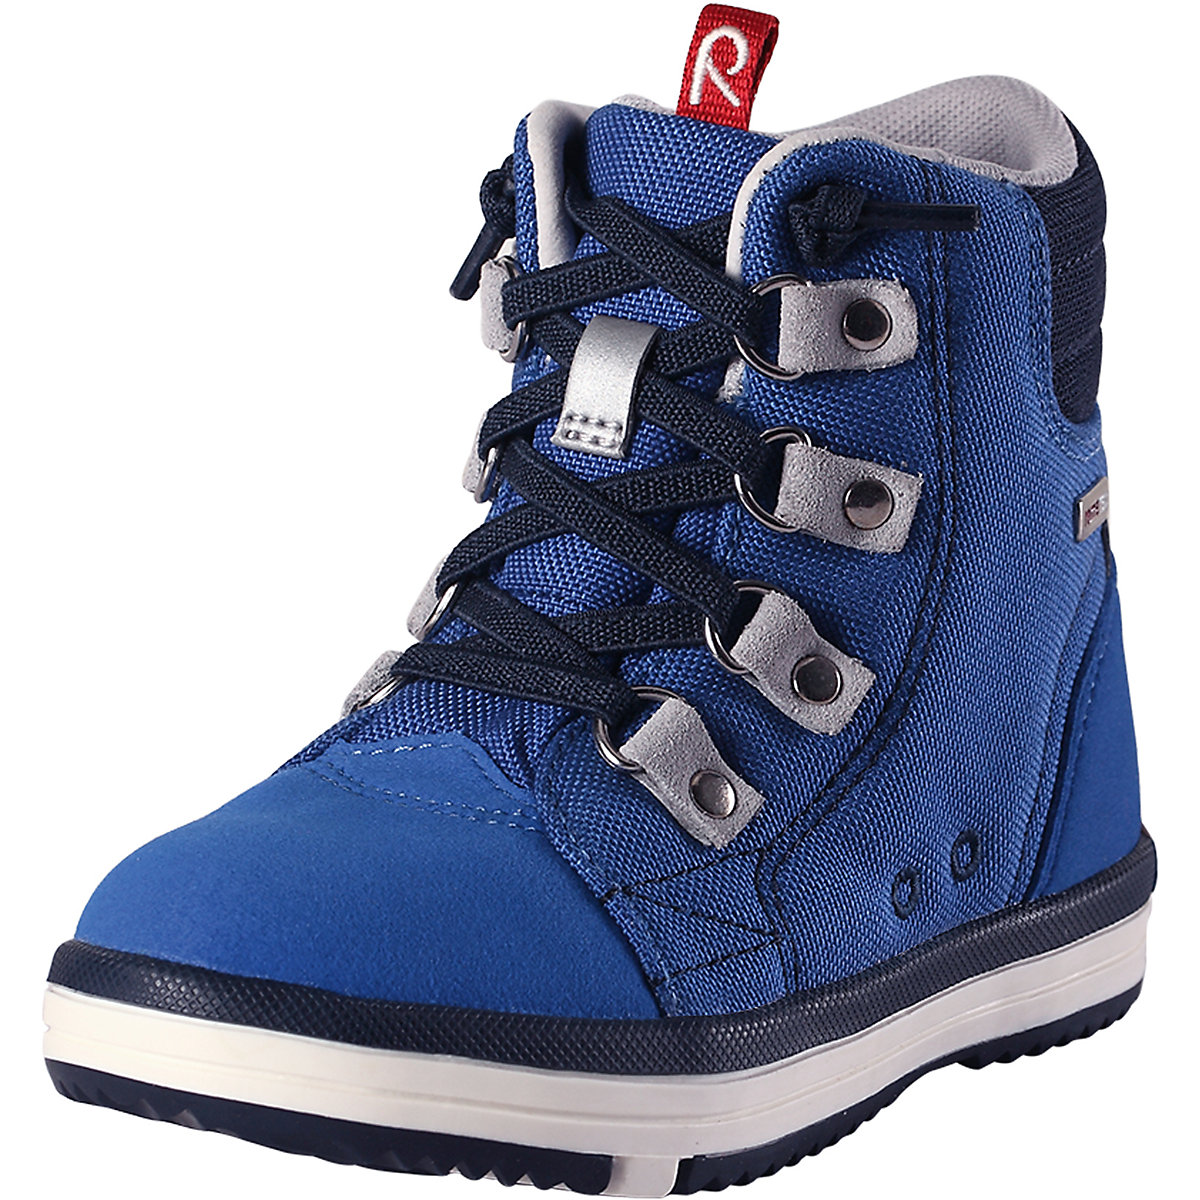 REIMA Boots 7635007 for boys and girls spring autumn boy girl  children shoes спальные мешки конверты пижамы dave